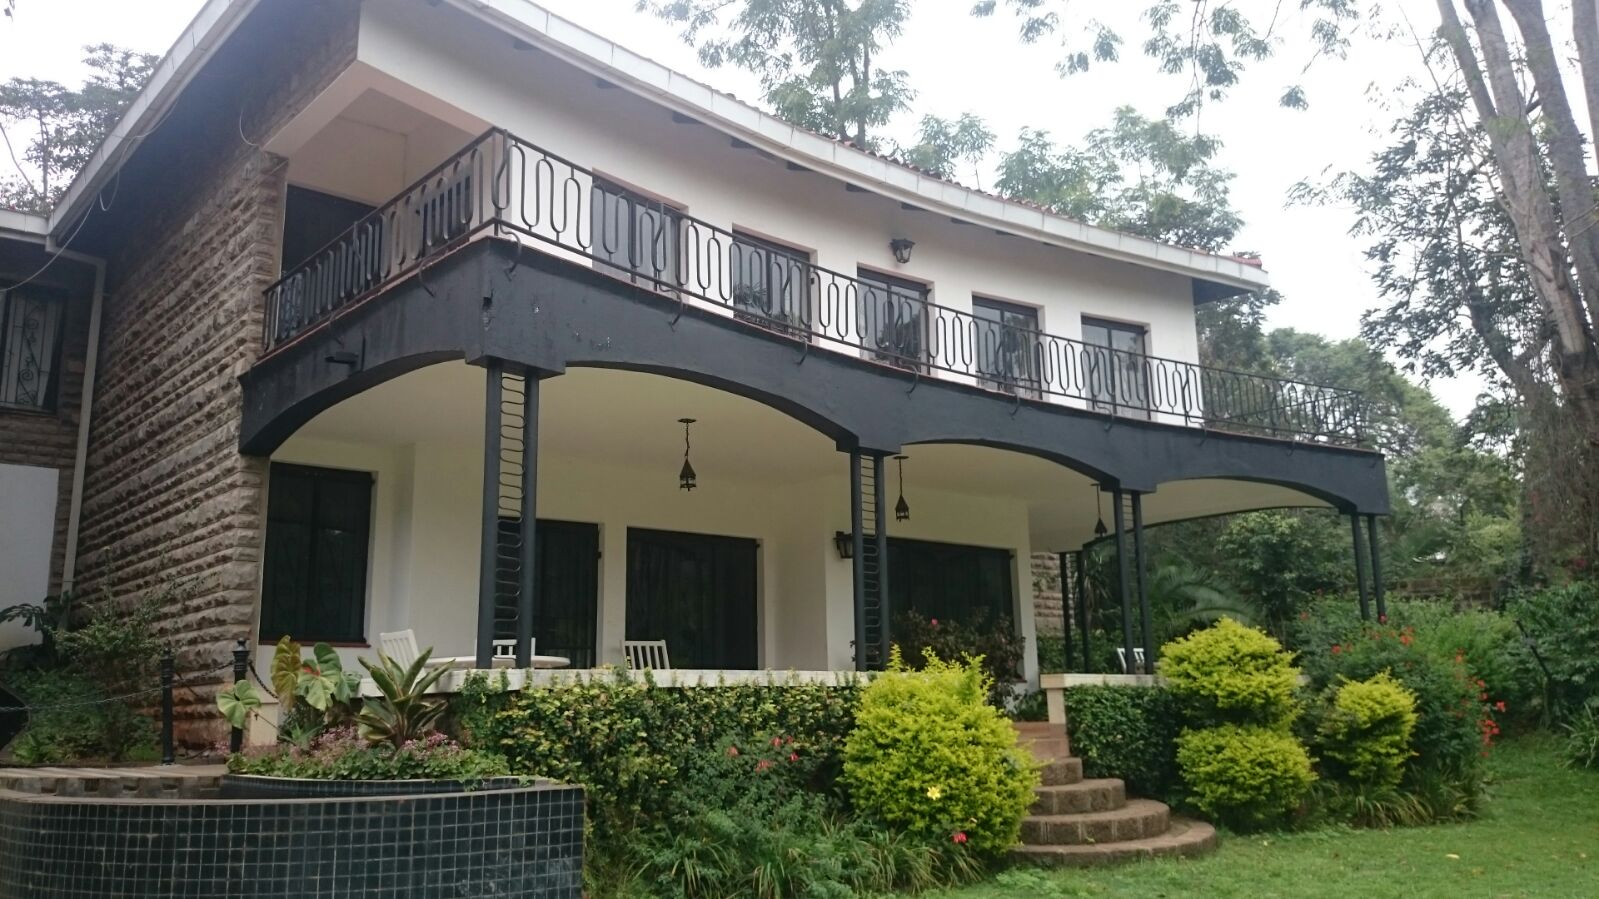 House for sale in nairobi kenya